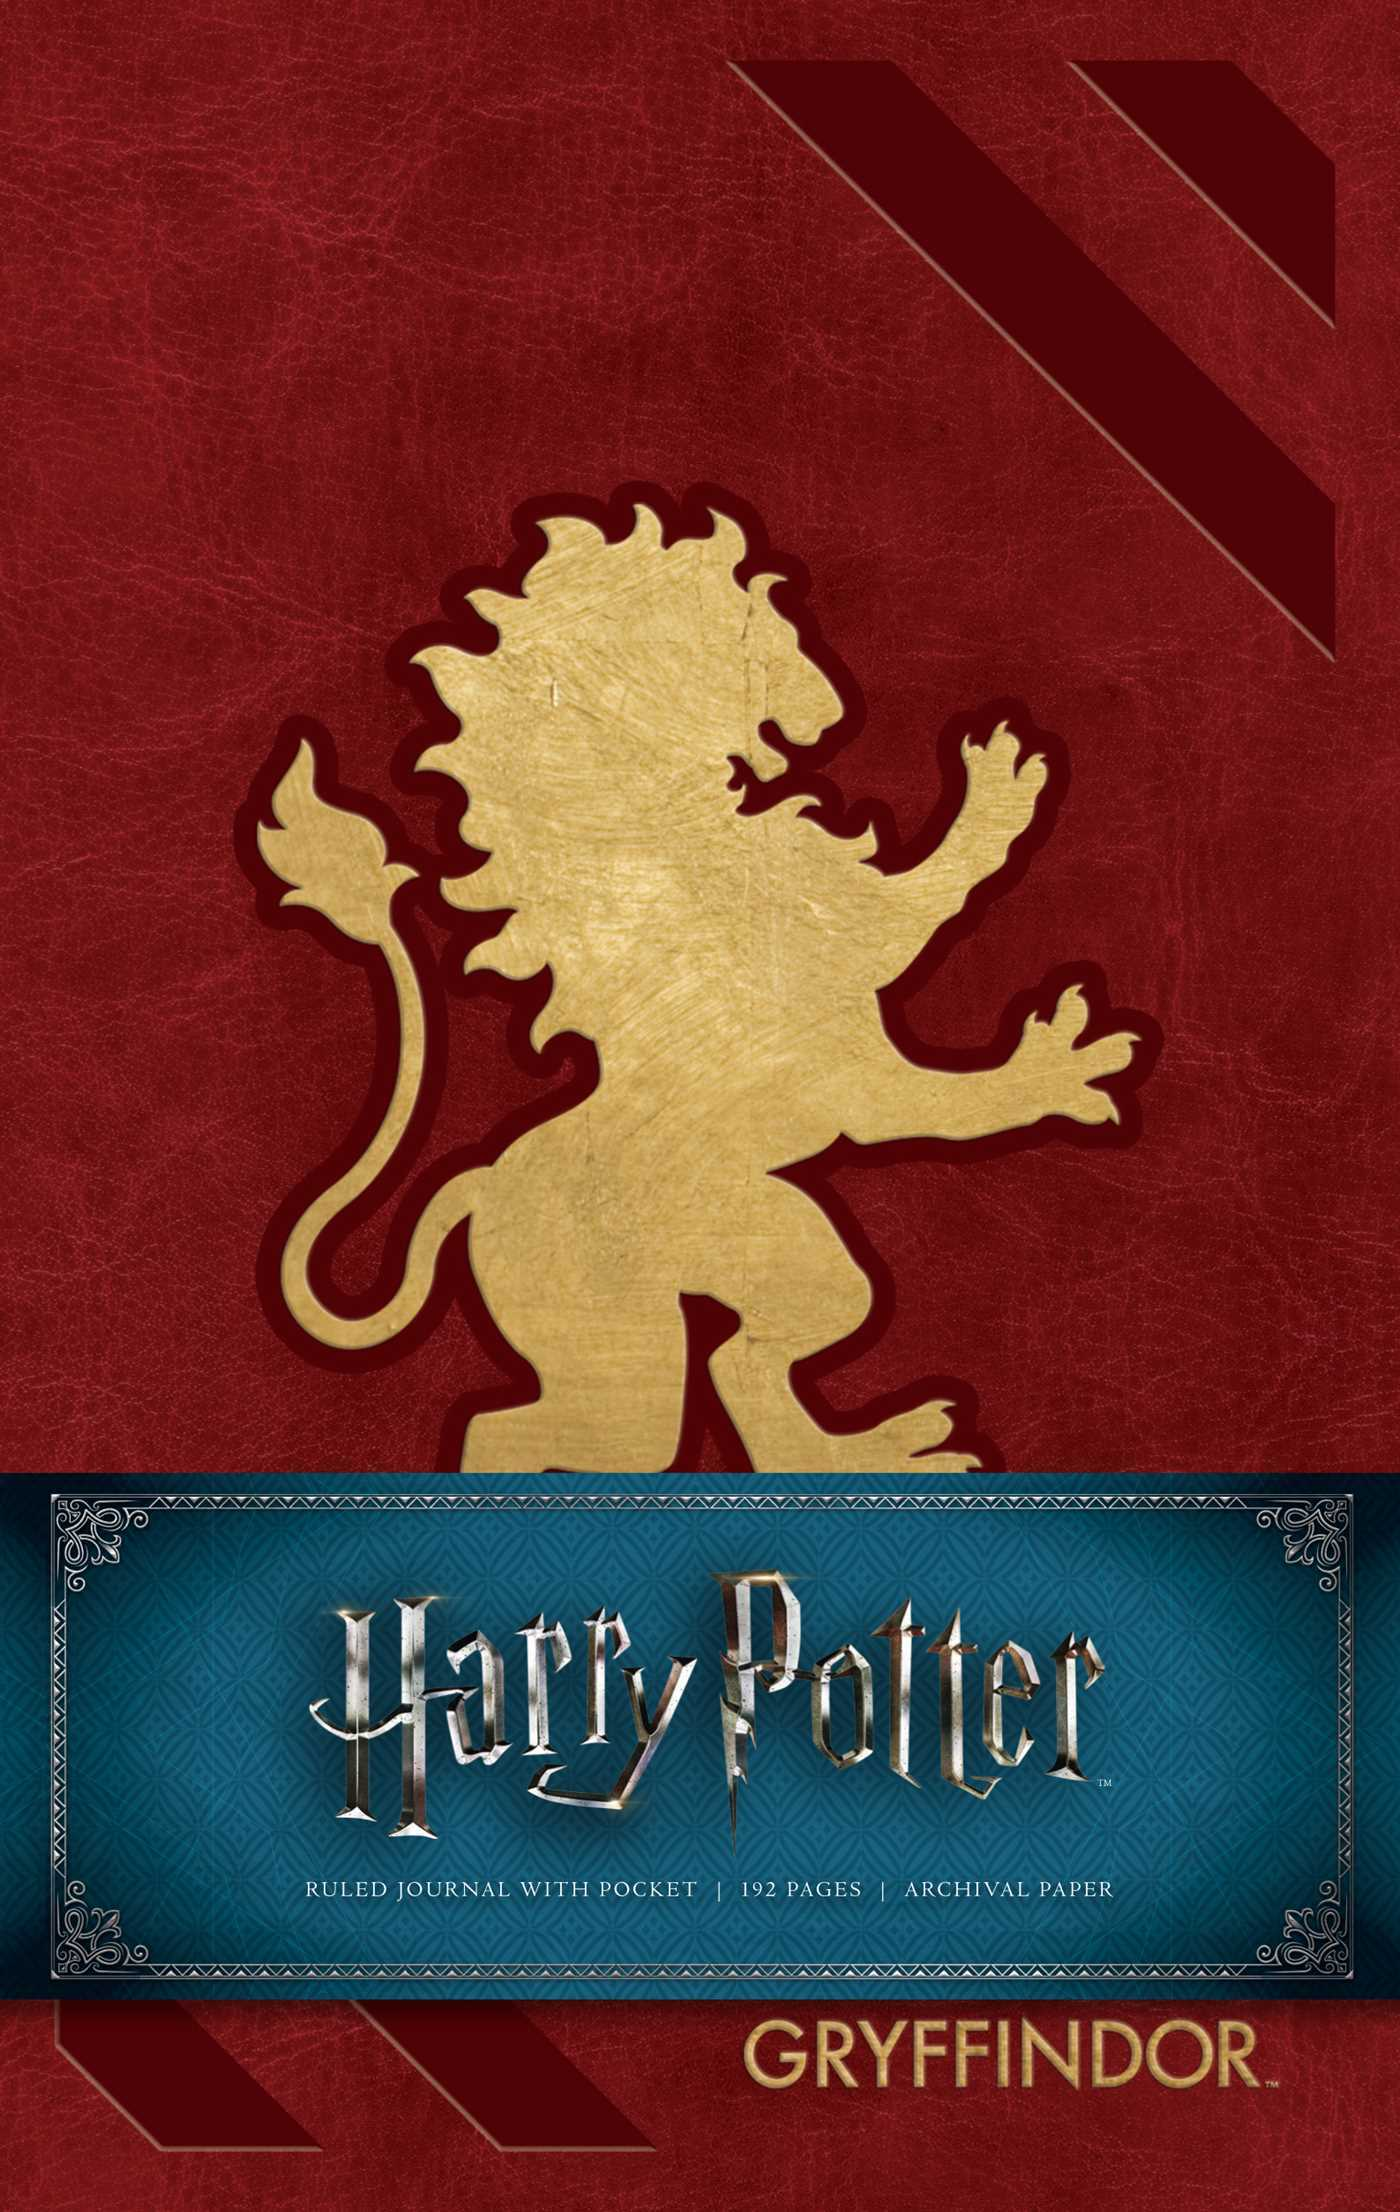 Harry Potter: Gryffindor Hardcover Ruled Journal